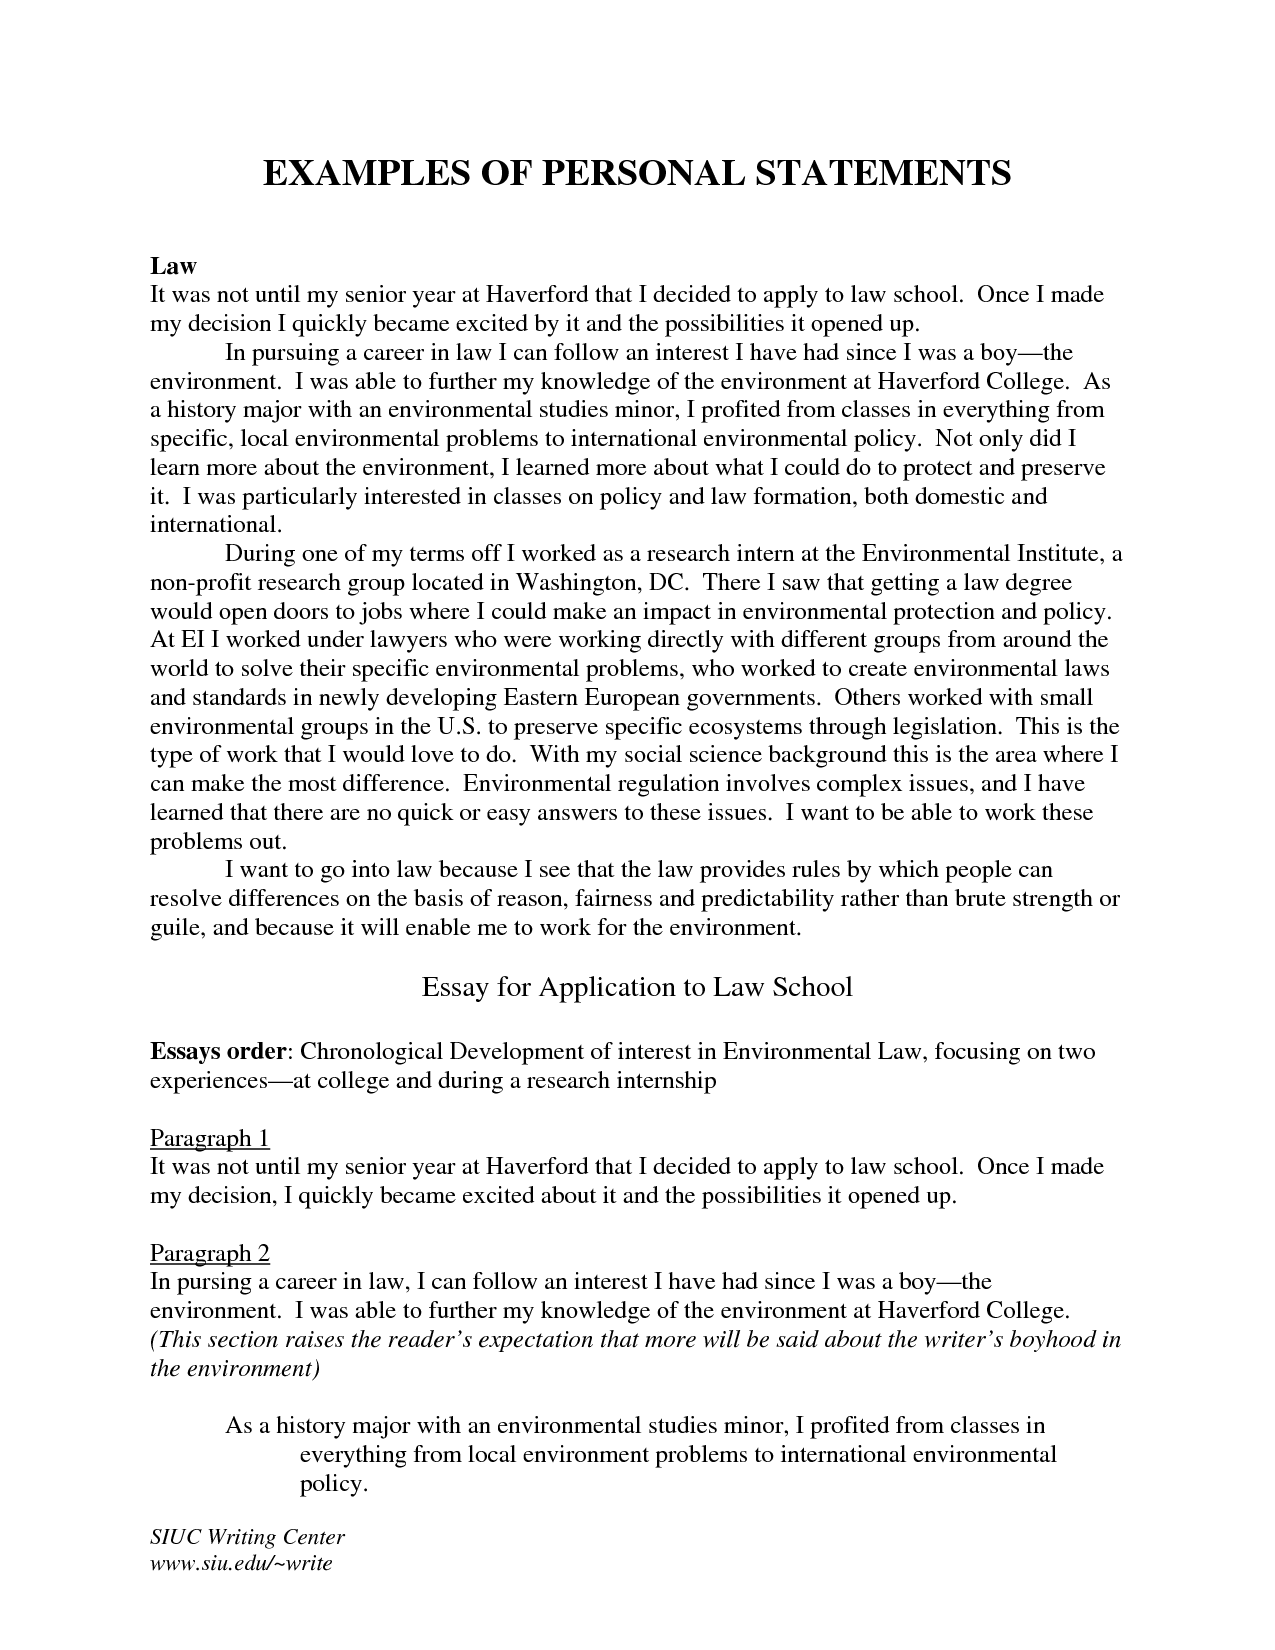 grad school essays samples offers tips on writing a statement of  grad school essays samples offers tips on writing a statement of purpose and provides sample